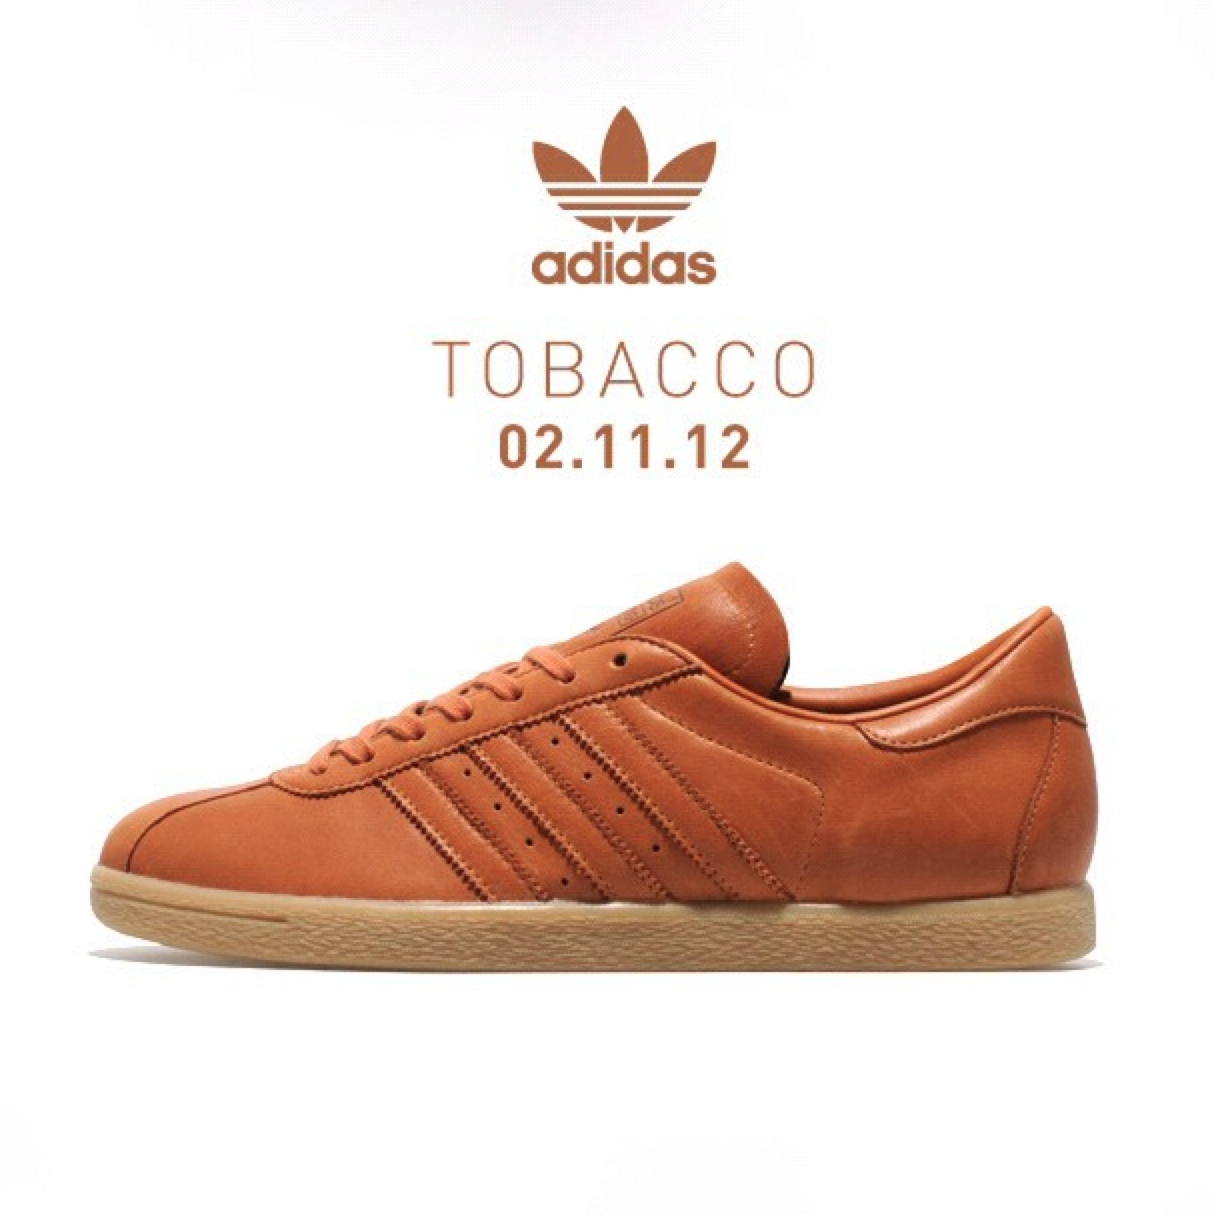 1da5d55d6df6de adidas Originals Tobacco Size  Exclusive